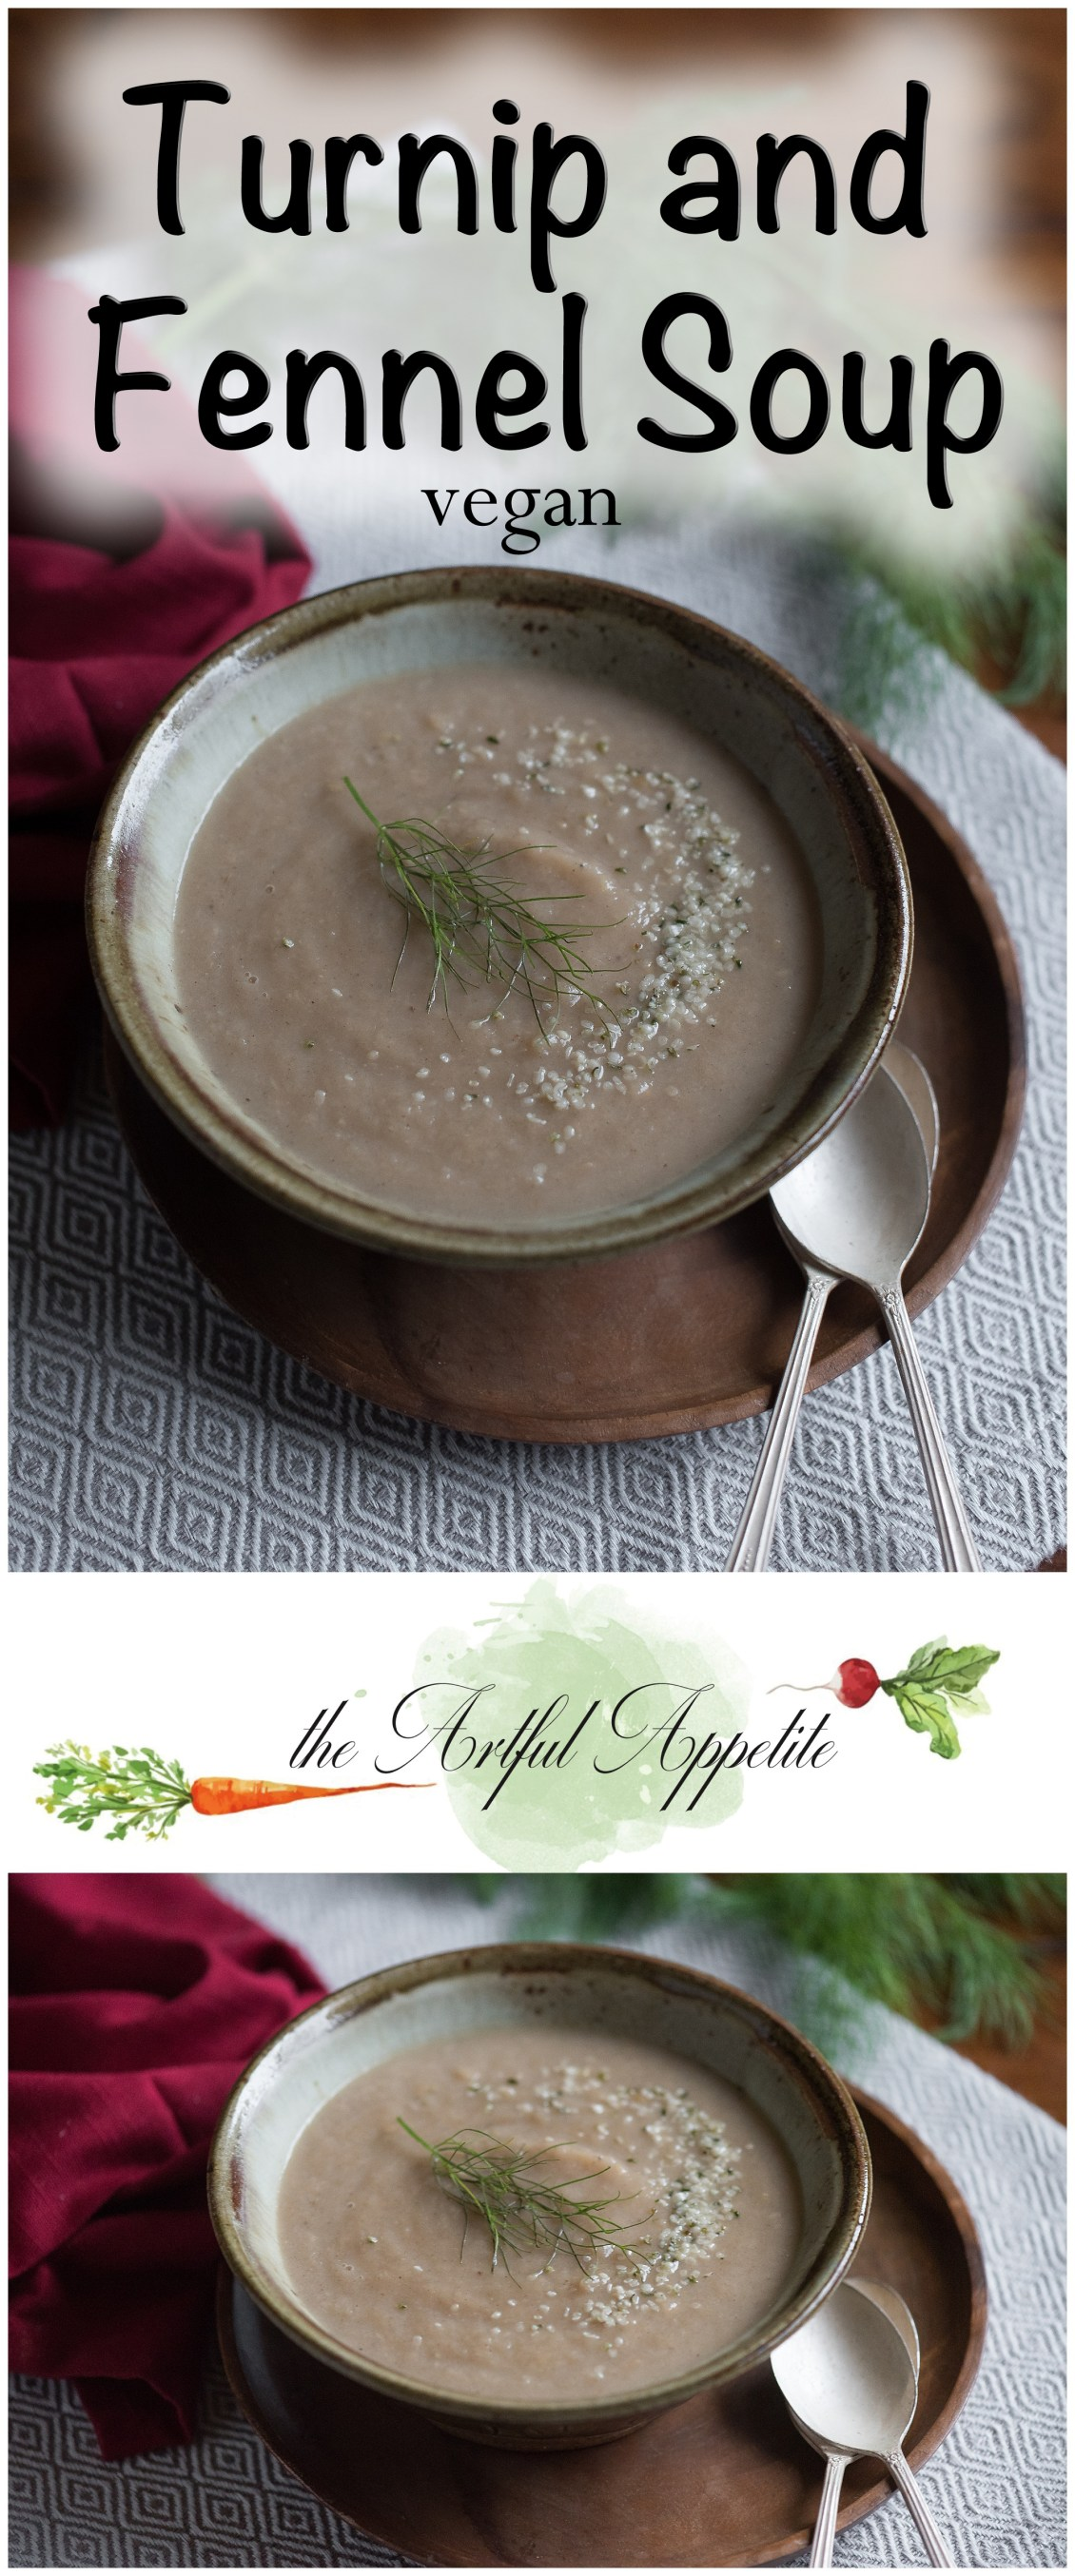 Whether you just want another cookbook or a whole lifestyle change, you want this book! The recipe for this turnip fennel soup is in the book! Vegan Weight Loss Manifesto | Cookbook Review and Turnip Fennel Soup